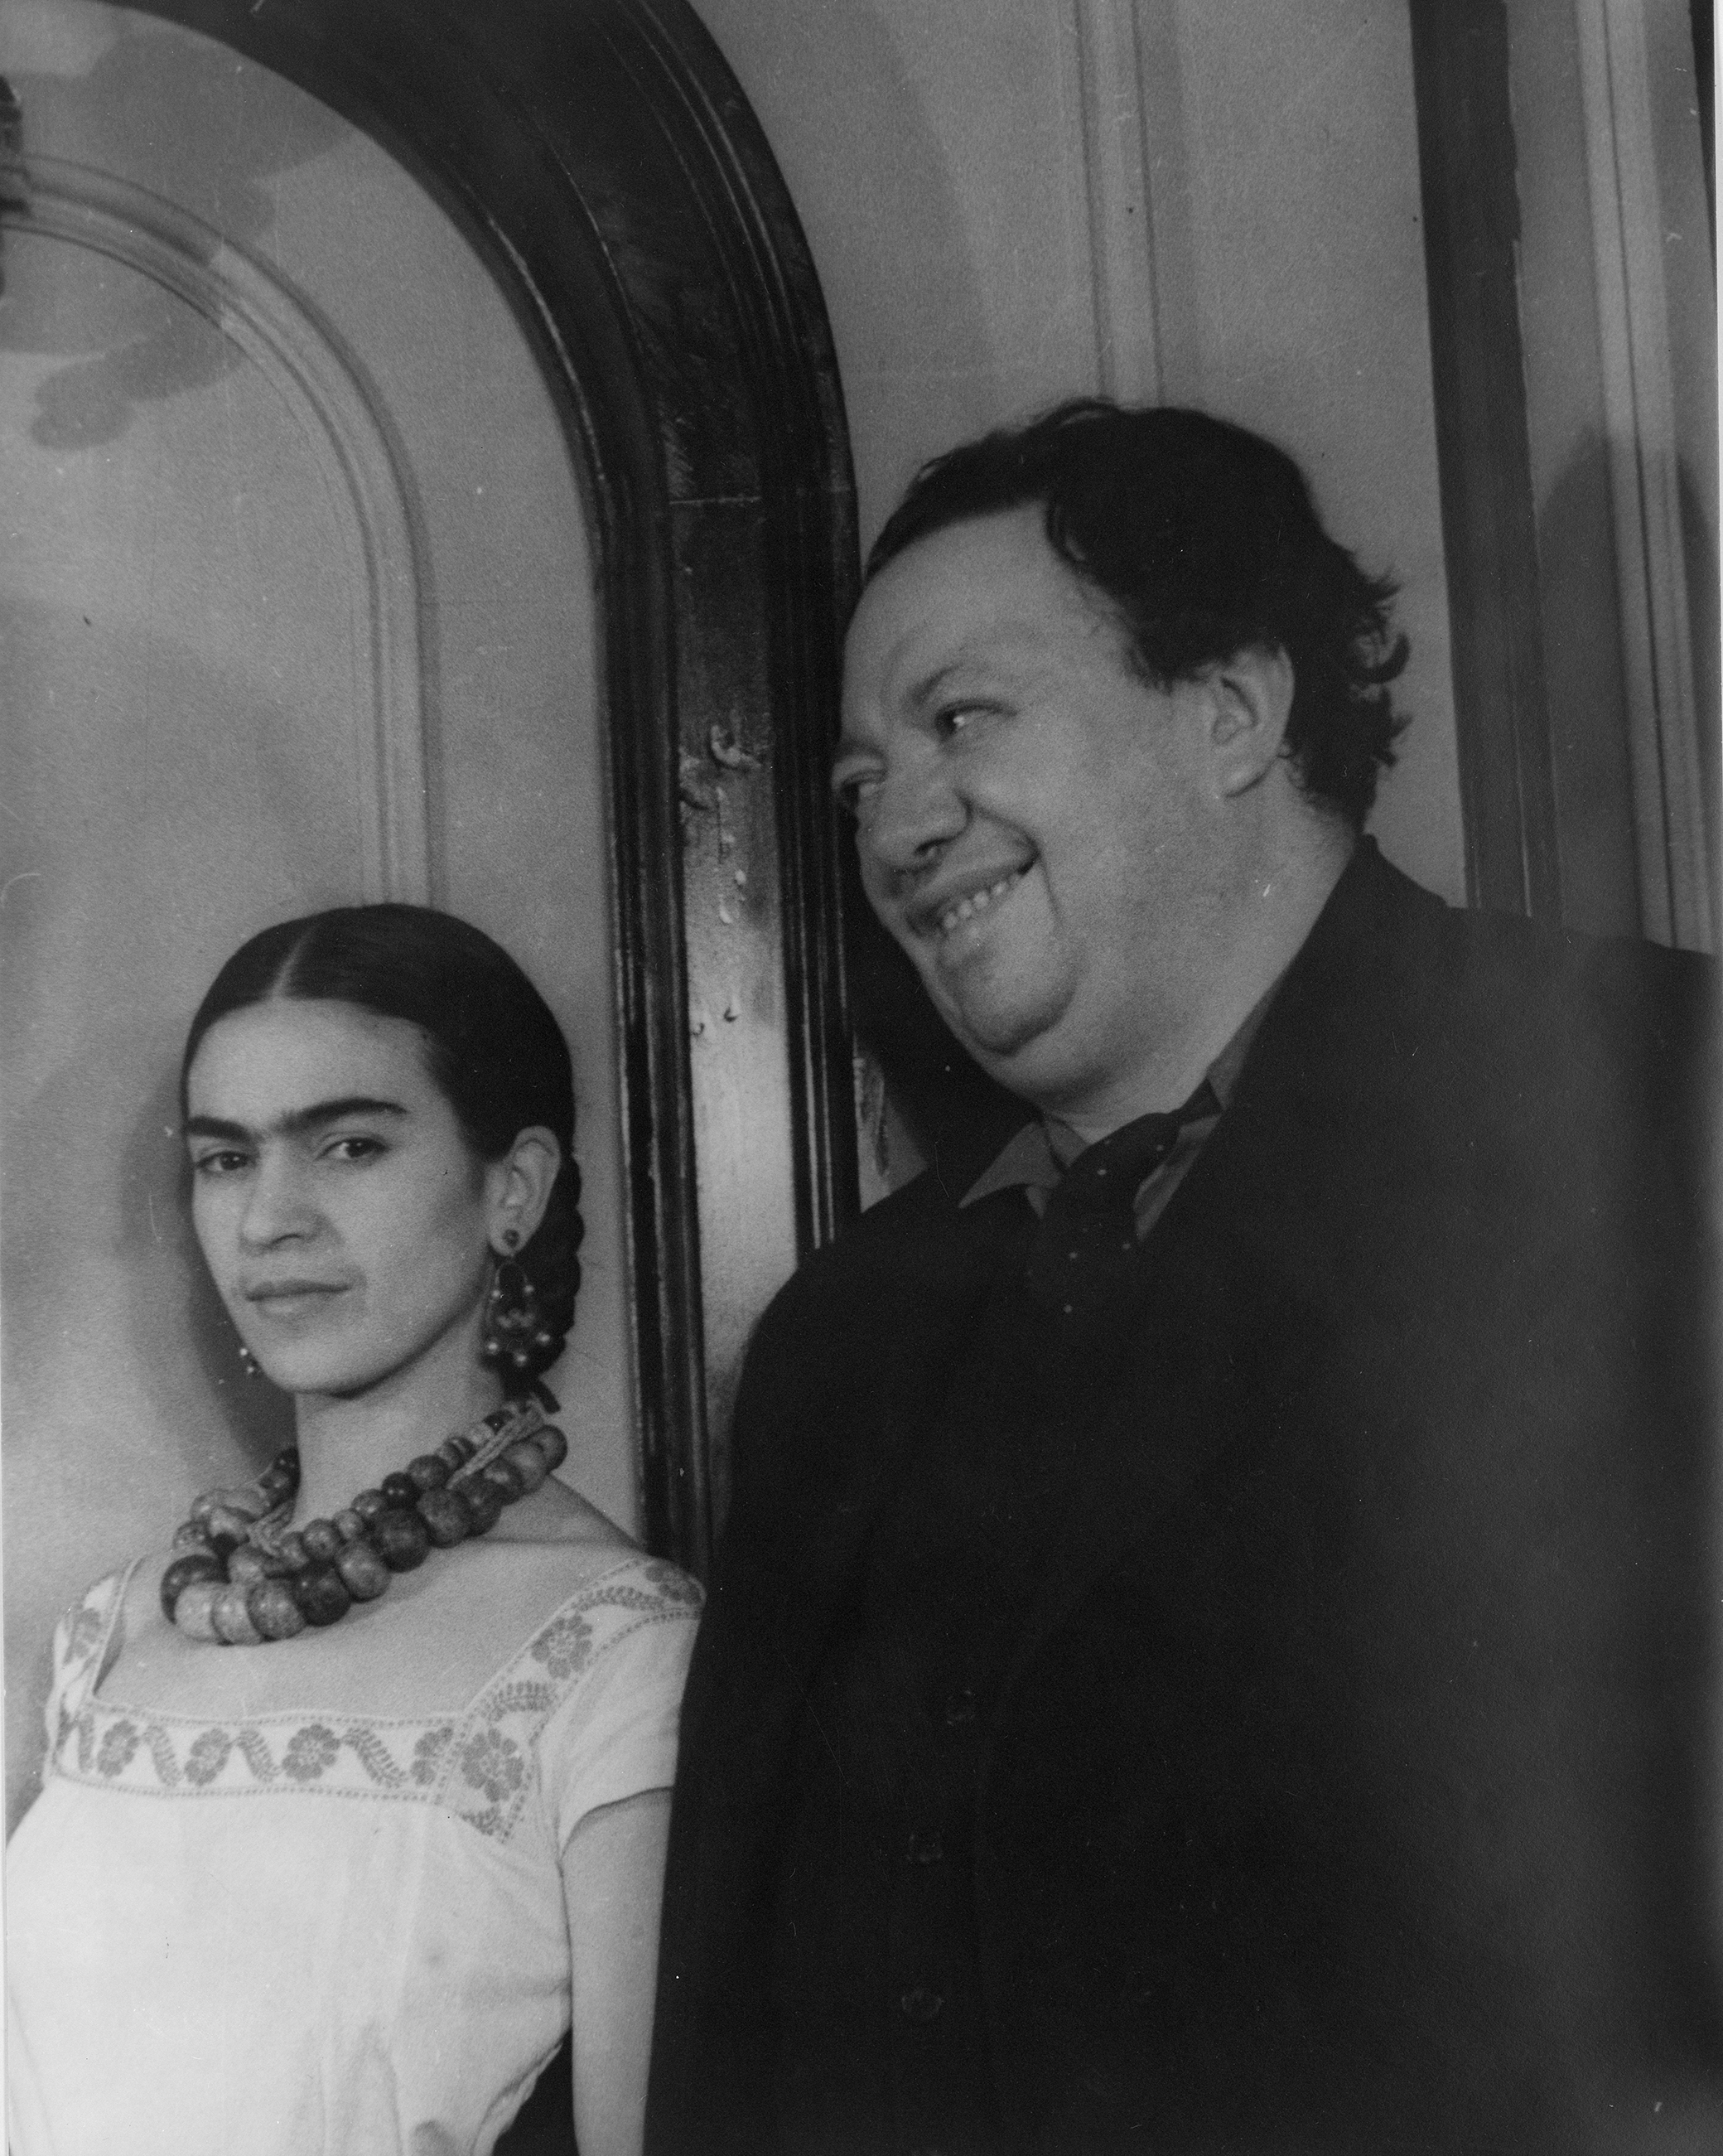 Portrait of Diego Rivera and Frida Kahlo, 1932. Photograph by Carl Van Vechten. Library of Congress, Prints and Photographs Division.